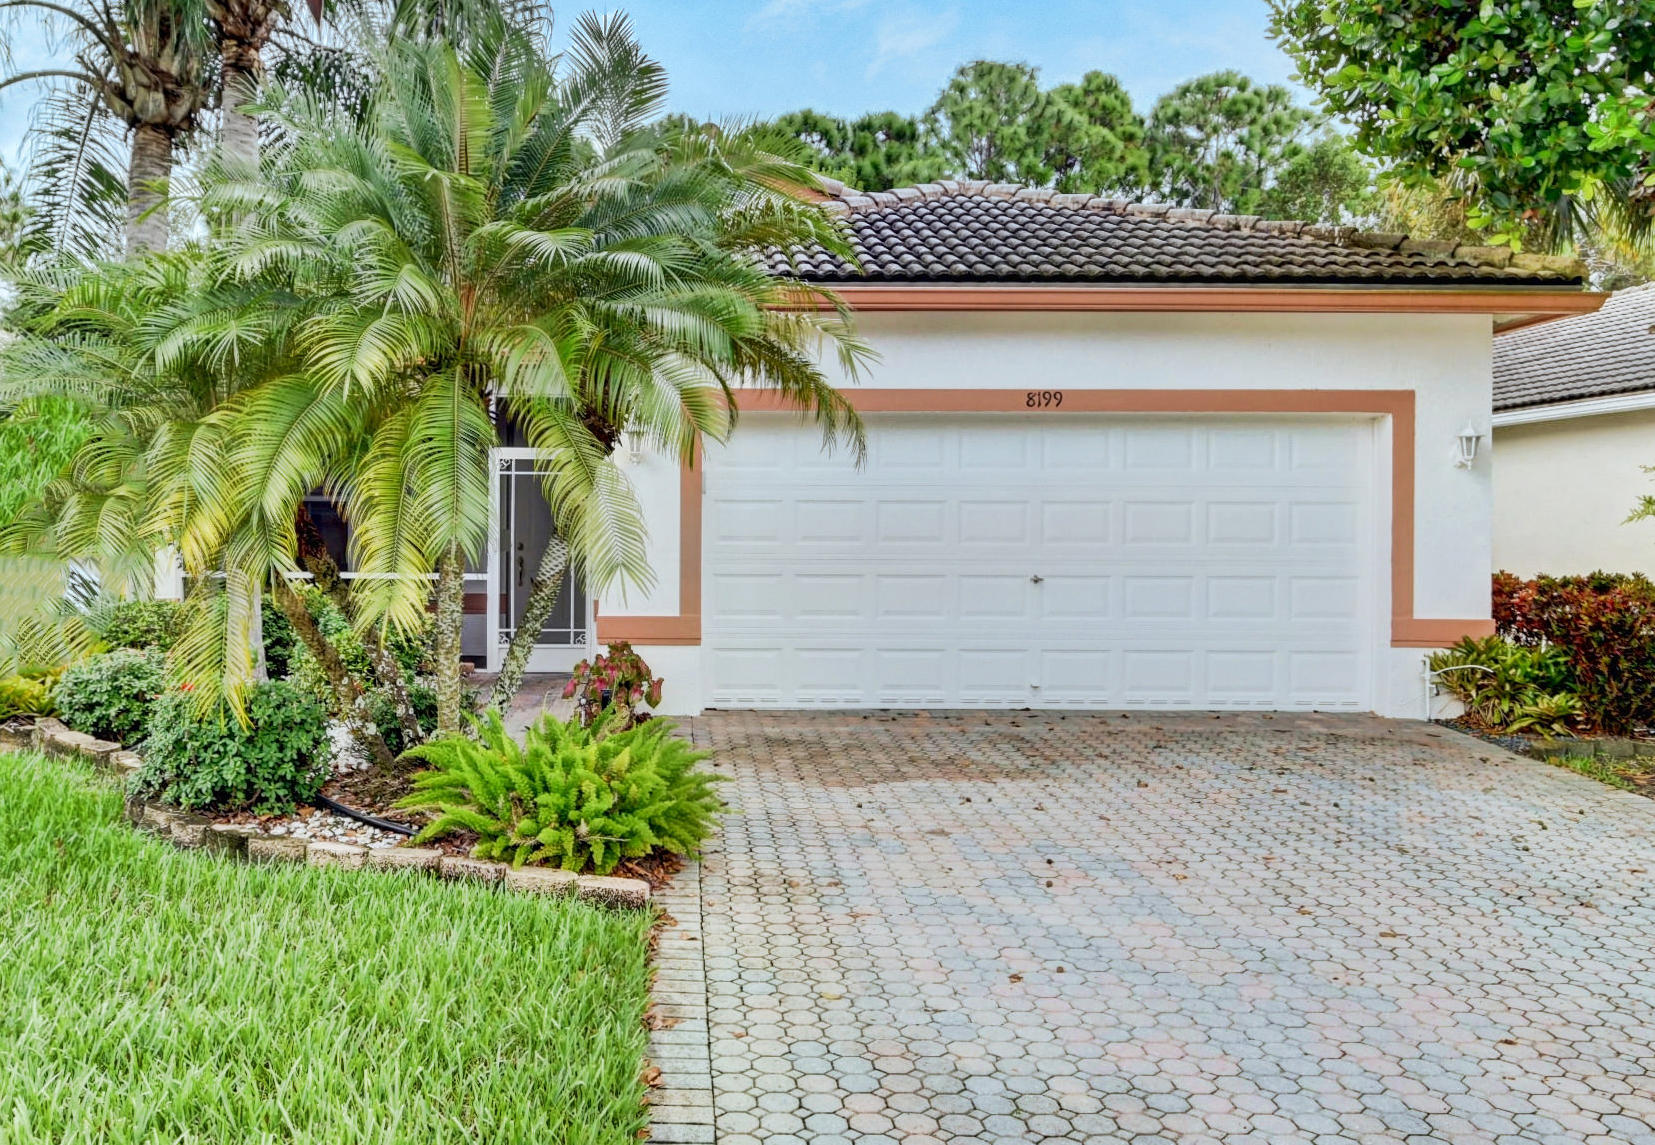 Details for 8199 Bellafiore Way, Boynton Beach, FL 33472